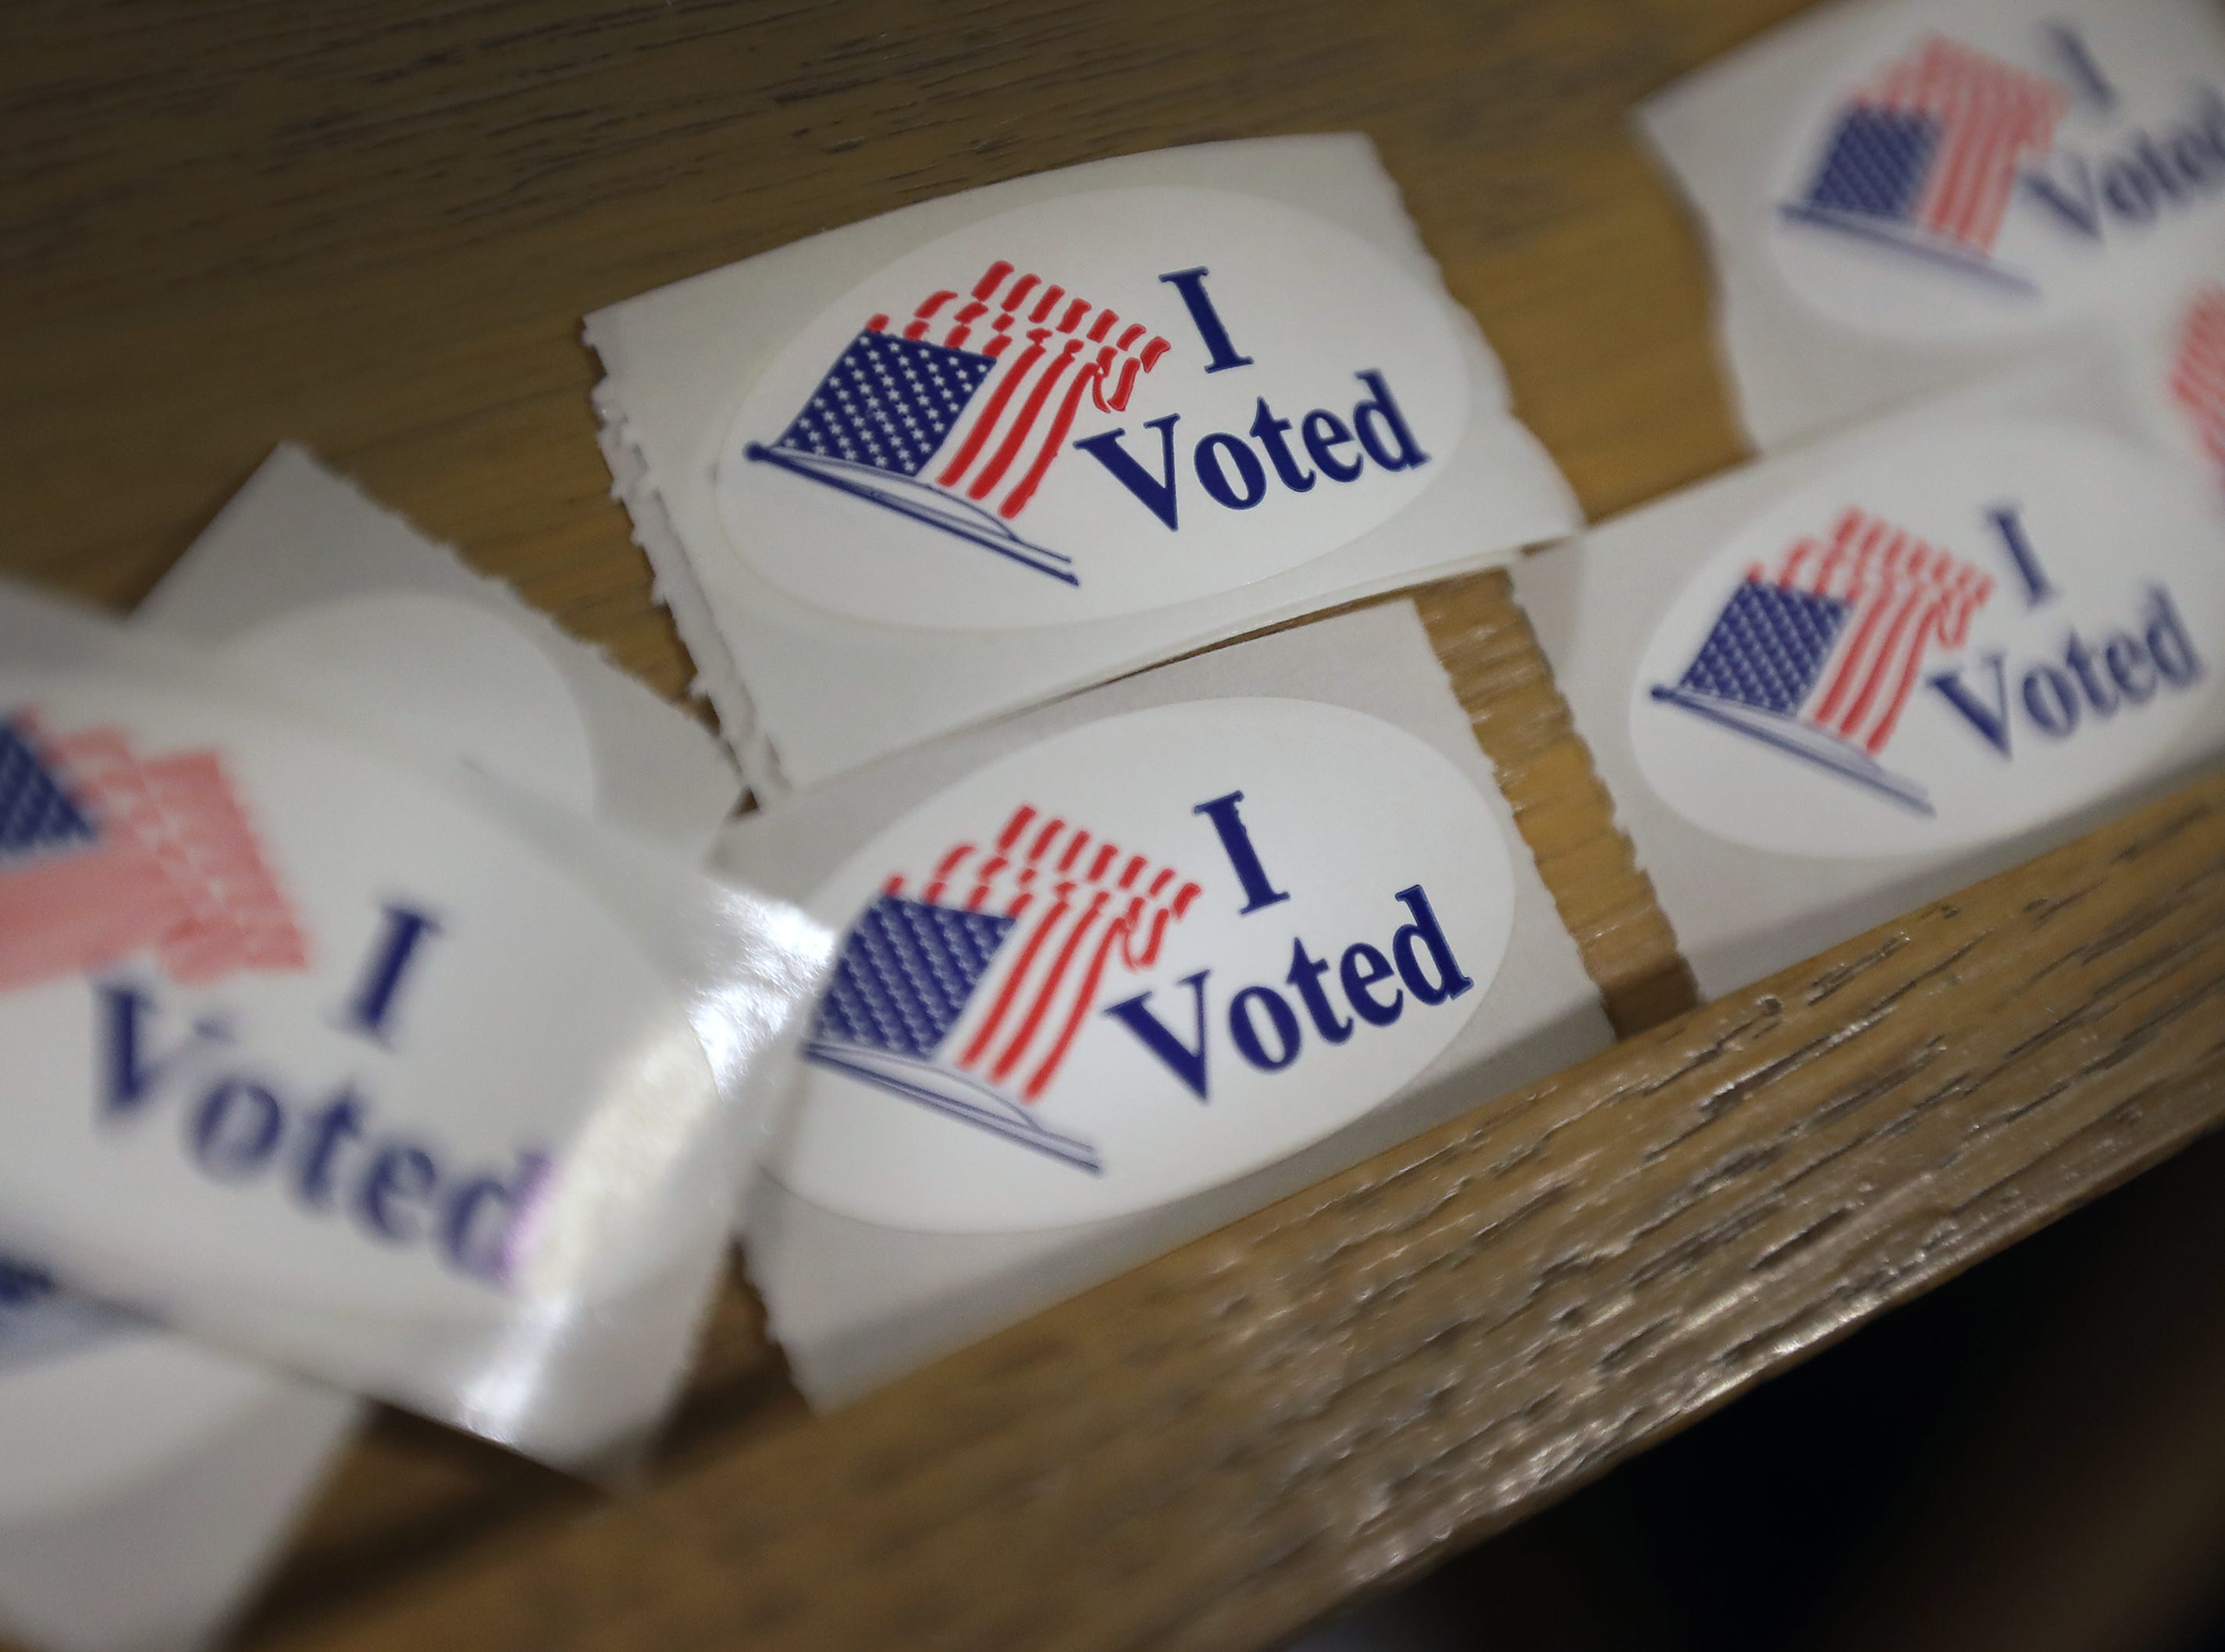 Voters head to the polls at Peace Lutheran Church on Tuesday, April 2, 2019, in Neenah, Wis.Wm. Glasheen/USA TODAY NETWORK-Wisconsin.